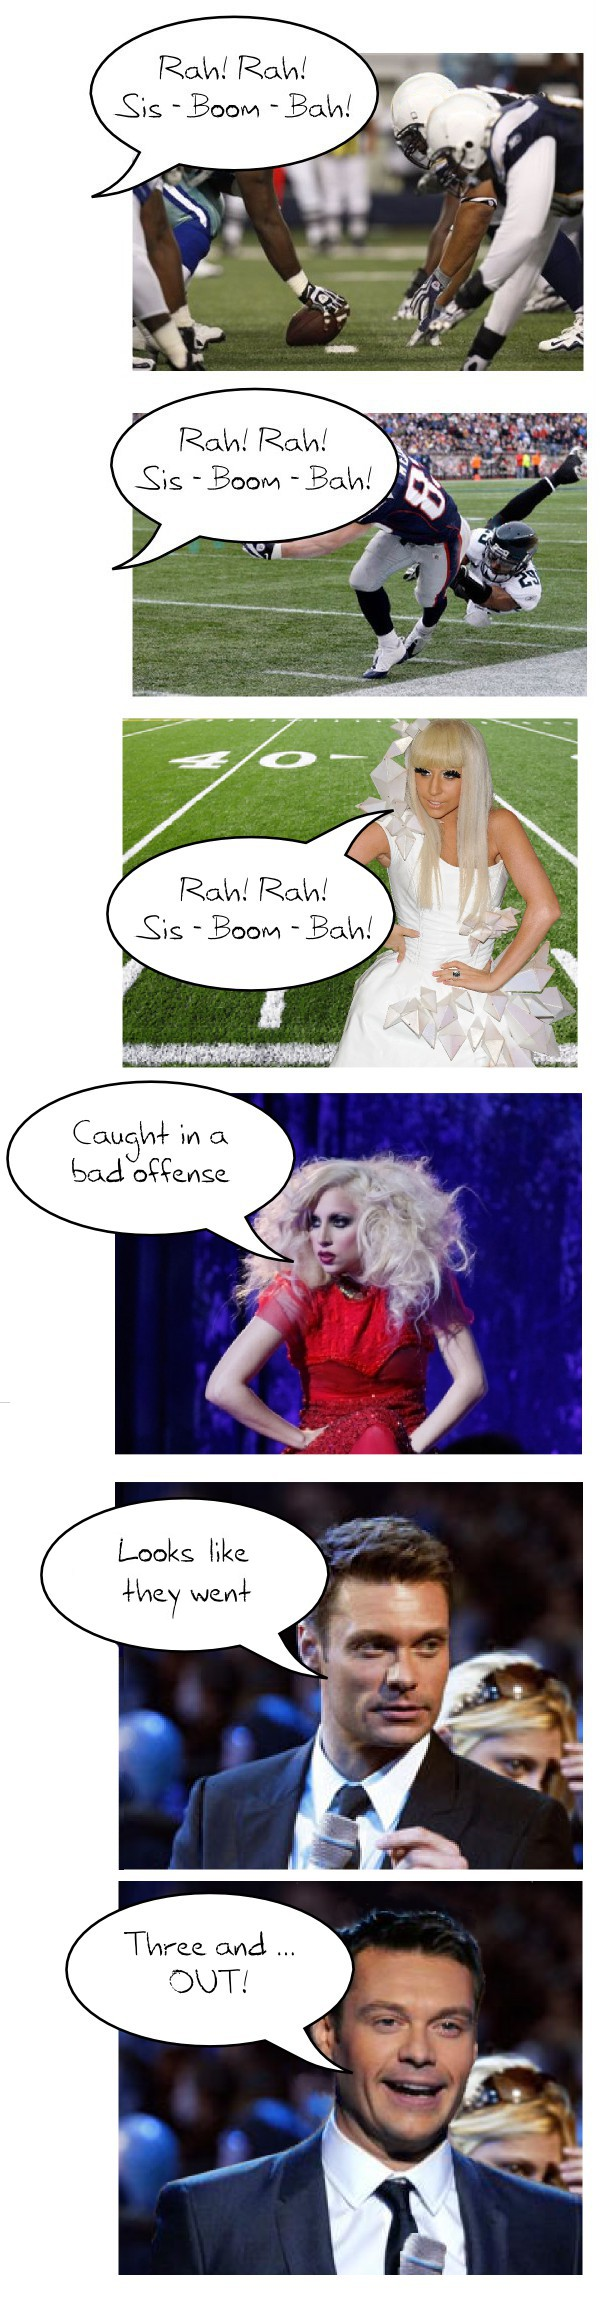 comic of Lady Gaga cheering for a football game, accompanied by Ryan Seacrest